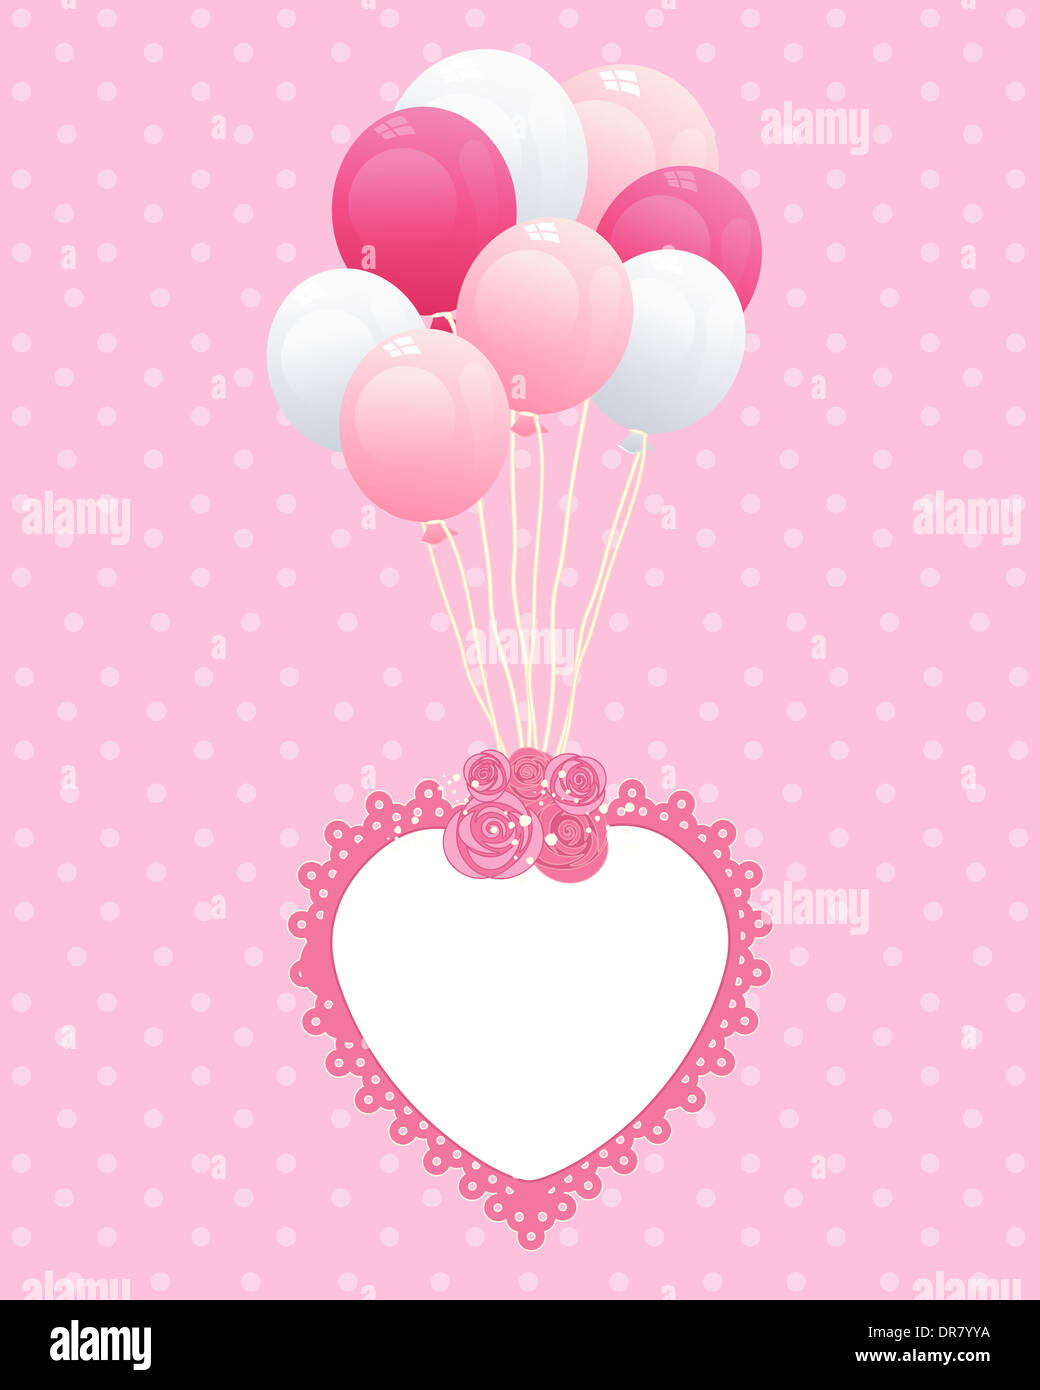 an illustration of a romantic greeting card design with fancy heart